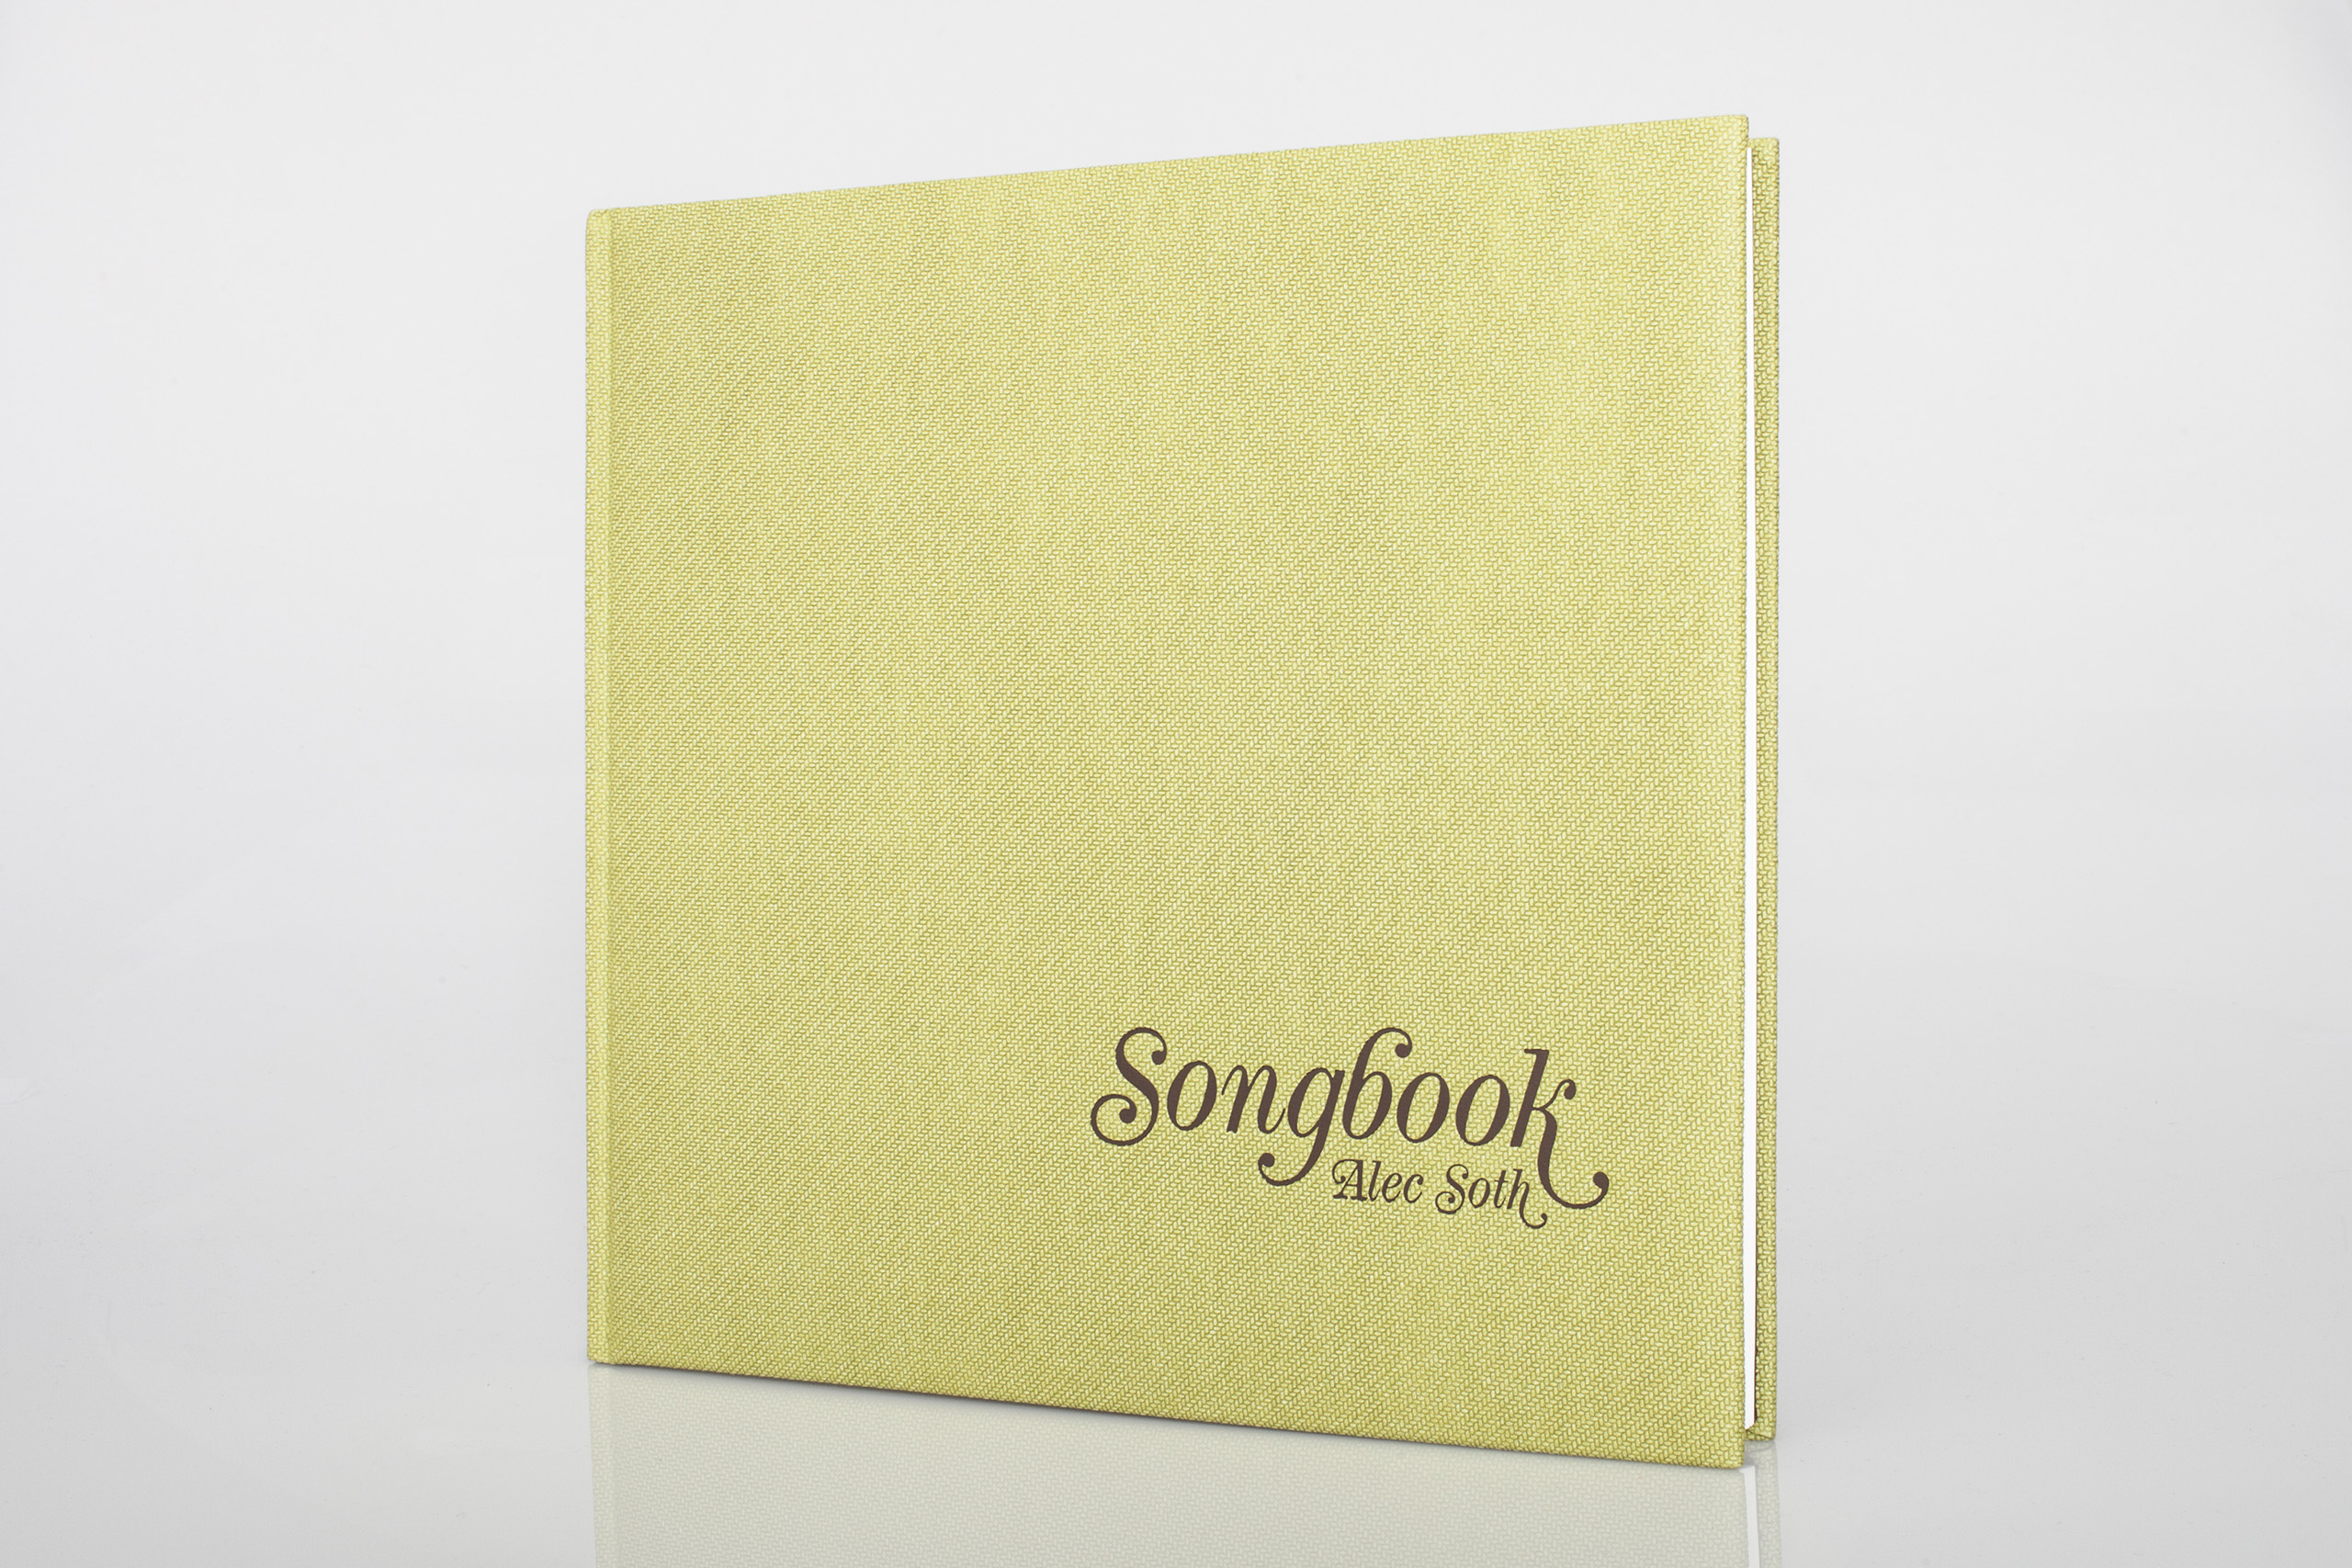 Songbook  by Alec SothPublished by Mack